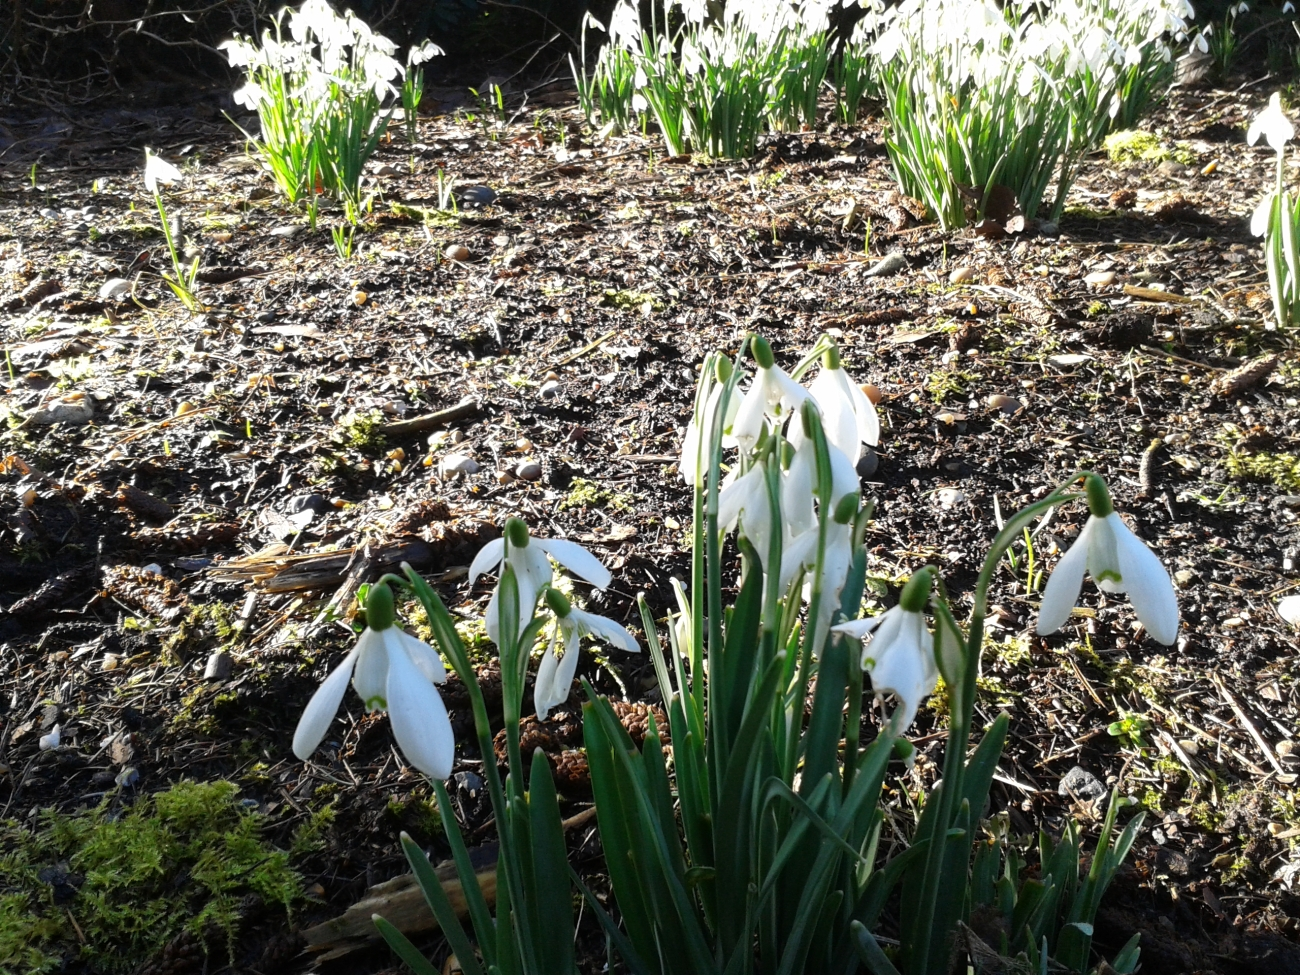 Snowdrops at Coombe Wood